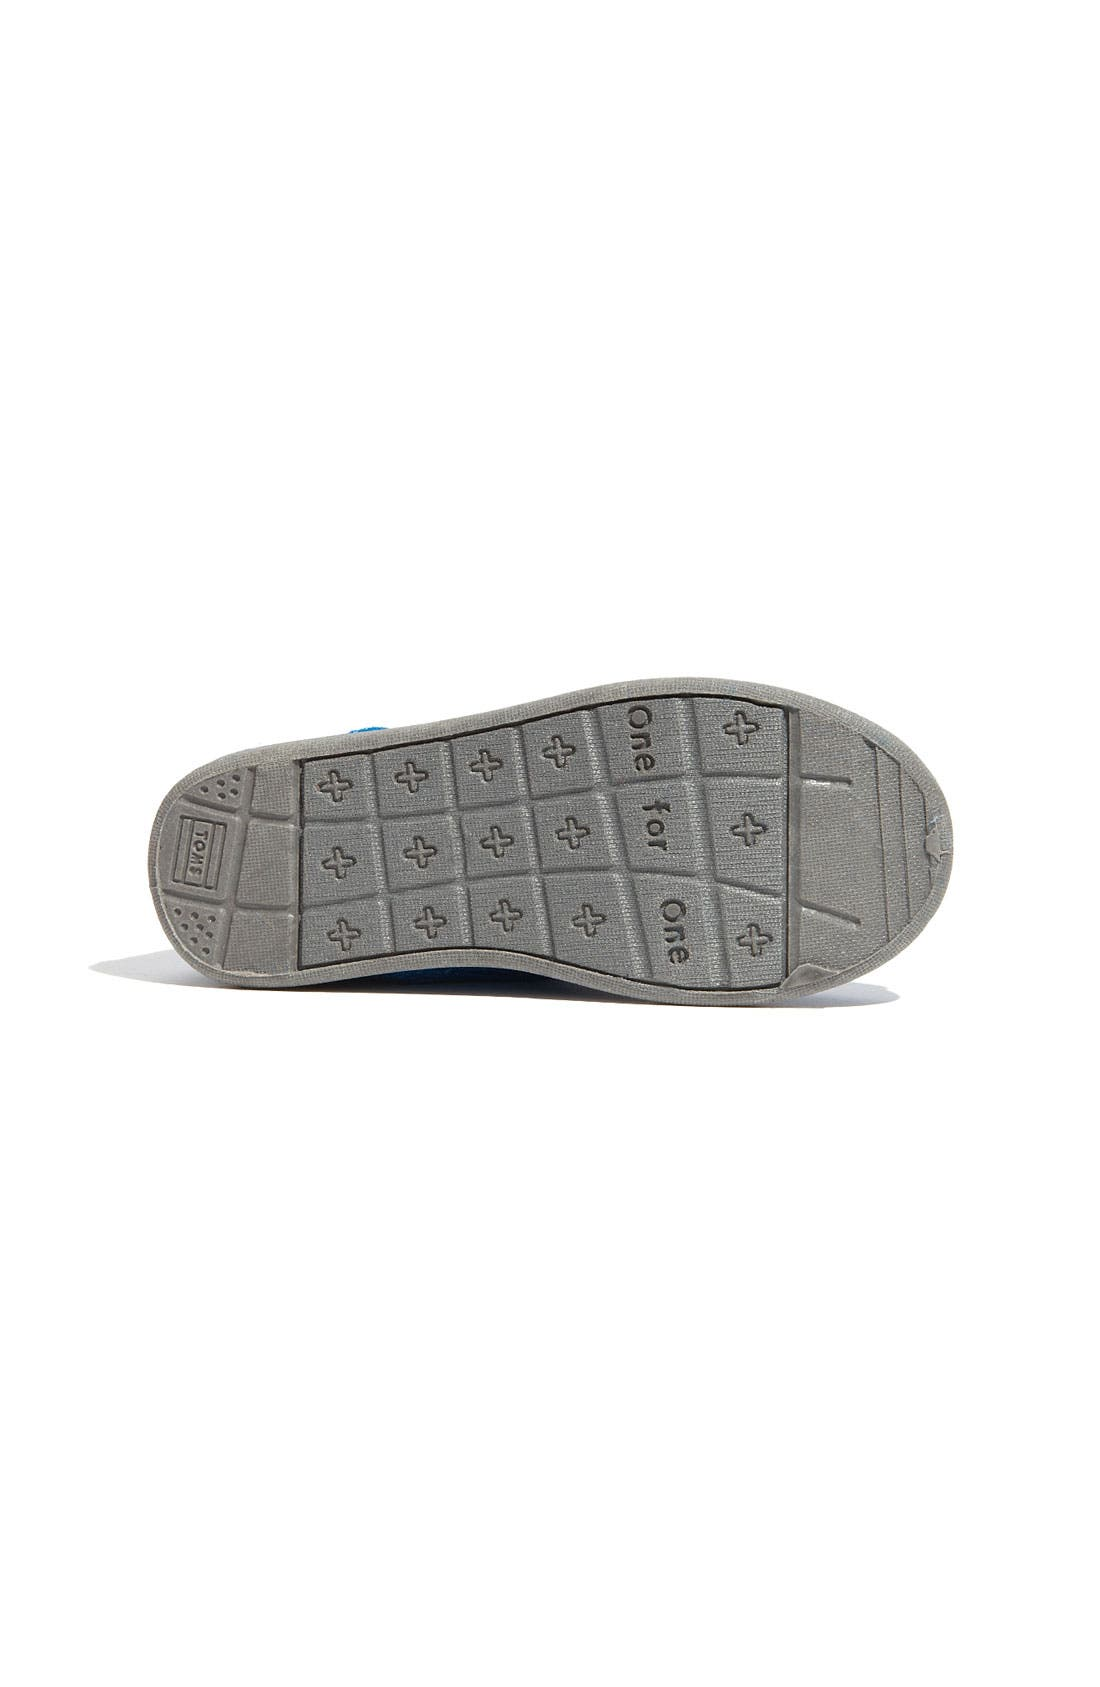 Alternate Image 4  - TOMS 'Cordones - Tiny' Woolen Slip-On Sneaker (Baby, Walker & Toddler)